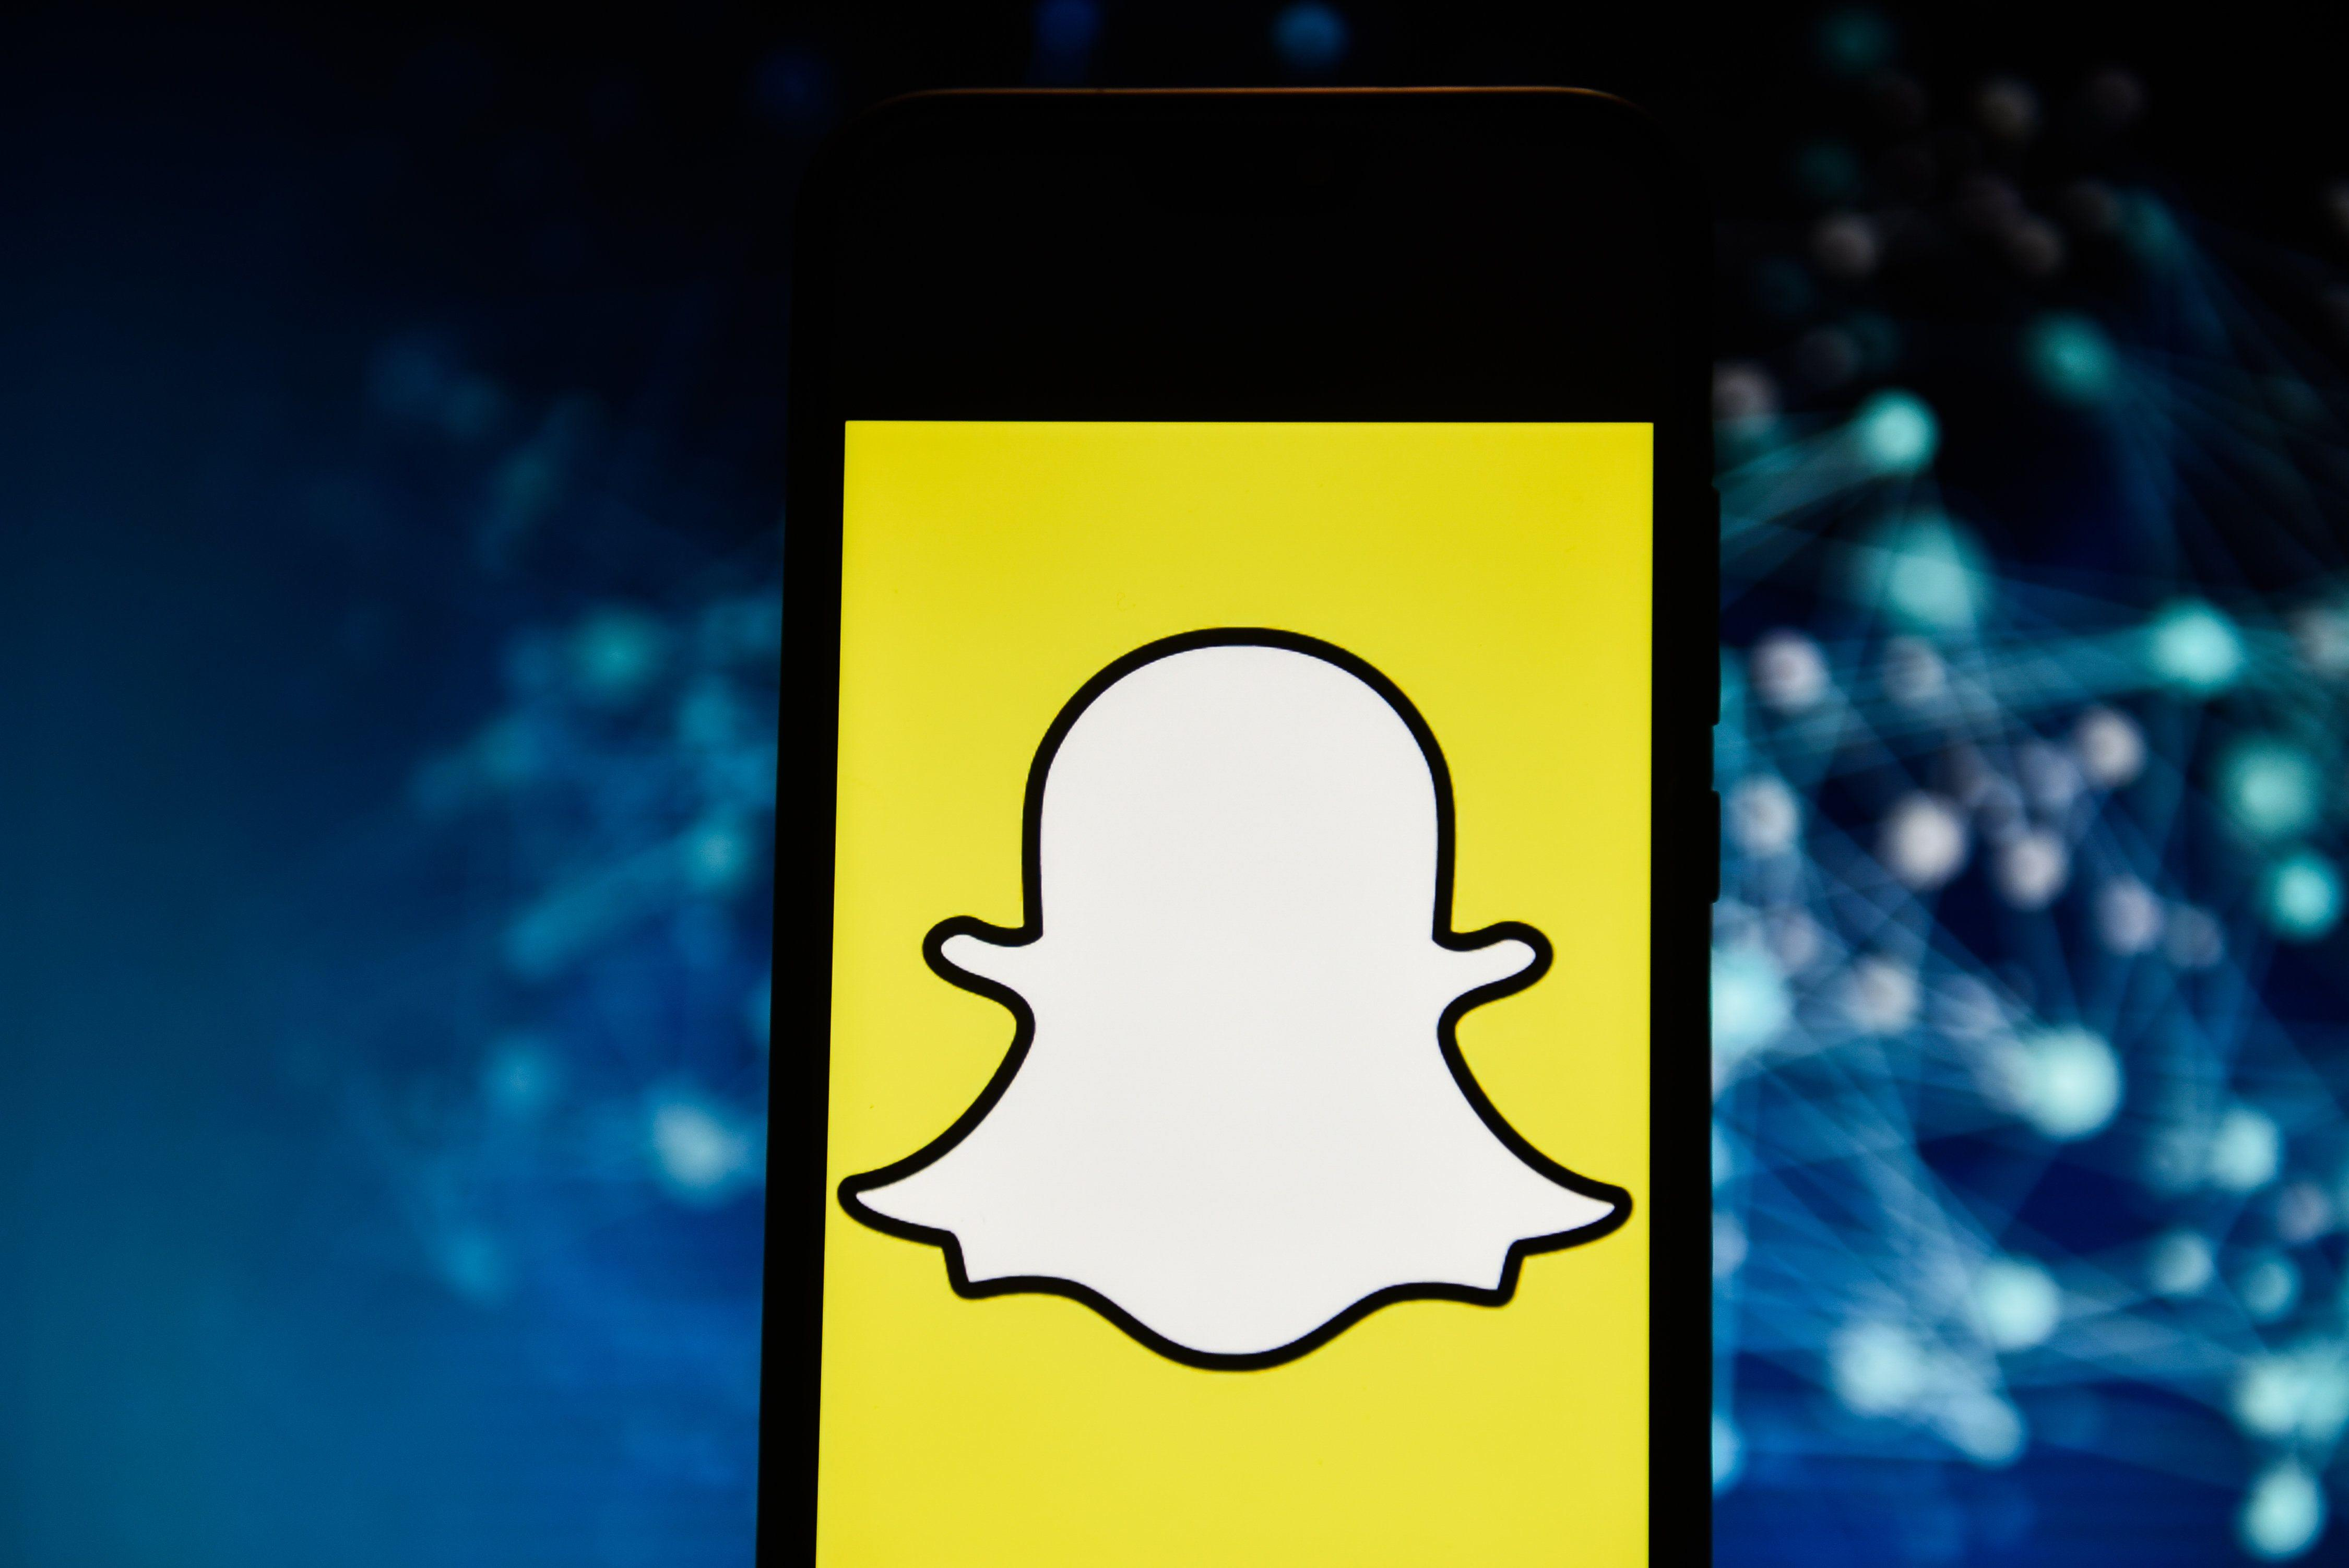 Snap stock is overvalued and may crash: Tech